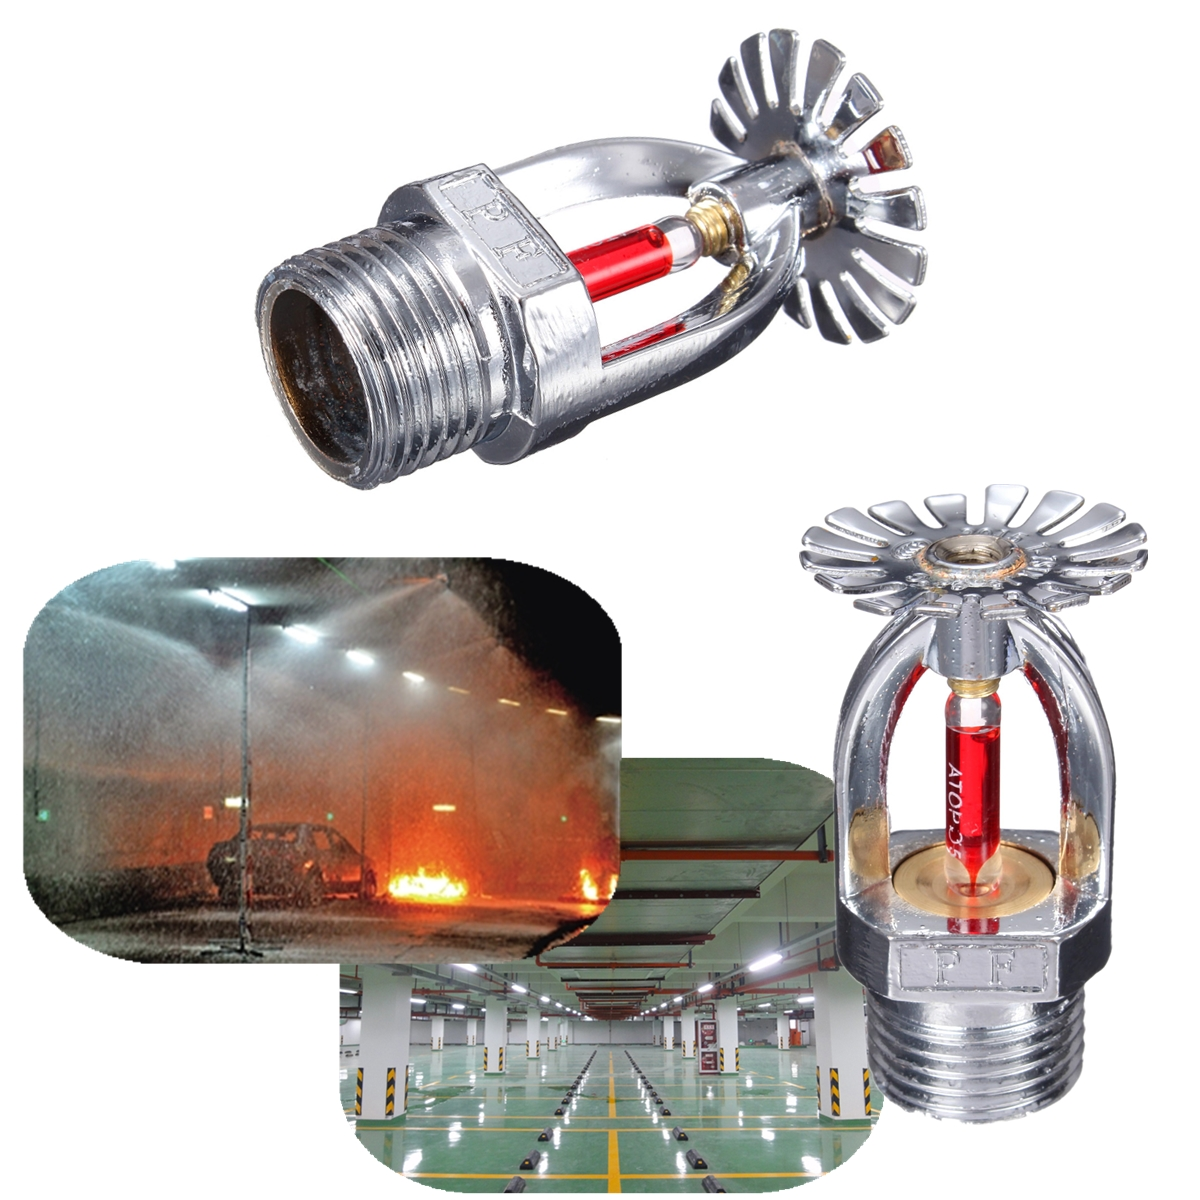 Details about 10x 68℃ ZSTX-15 Pendent Fire Sprinkler Head Fire  Extinguishing System Protection